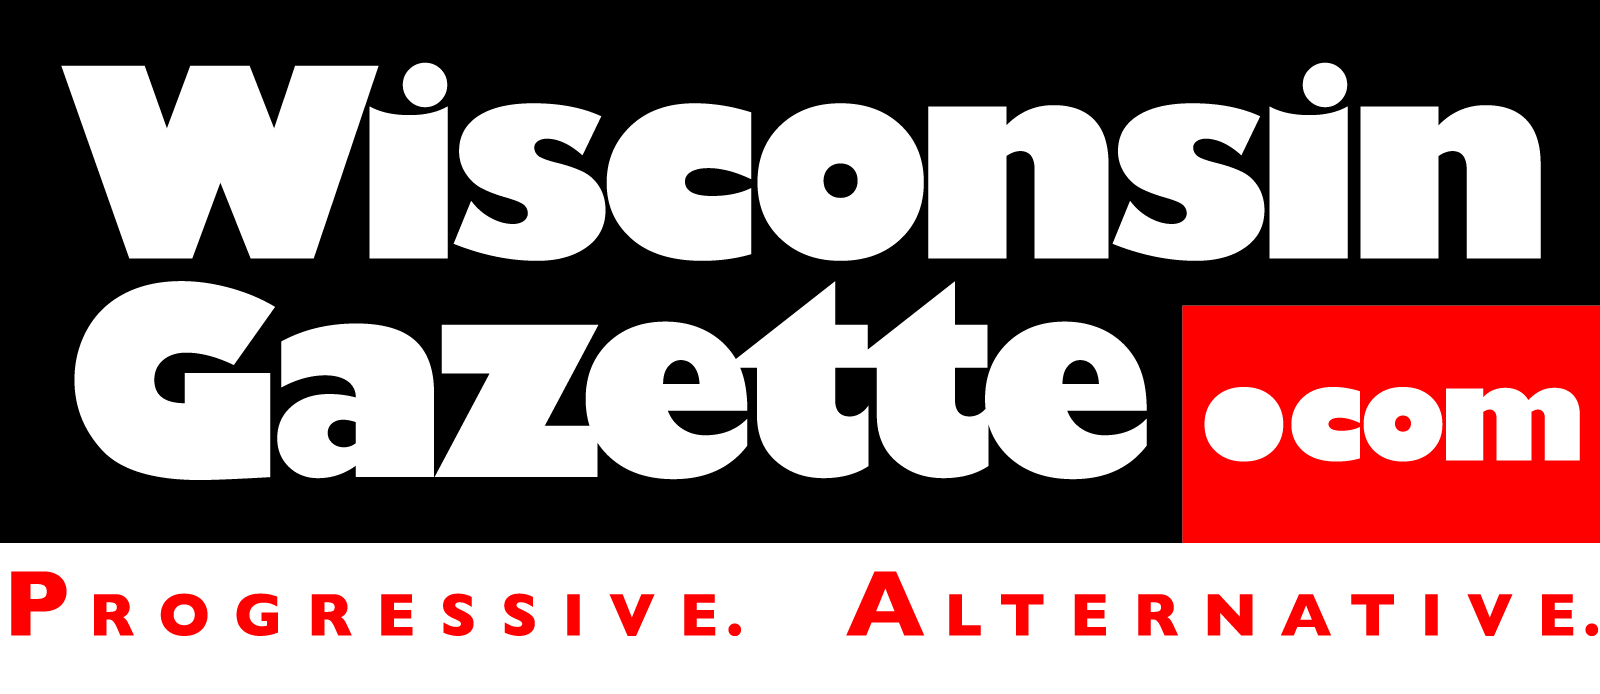 Wisconsin-Gazette-Logo-car-leasing-concierge.png